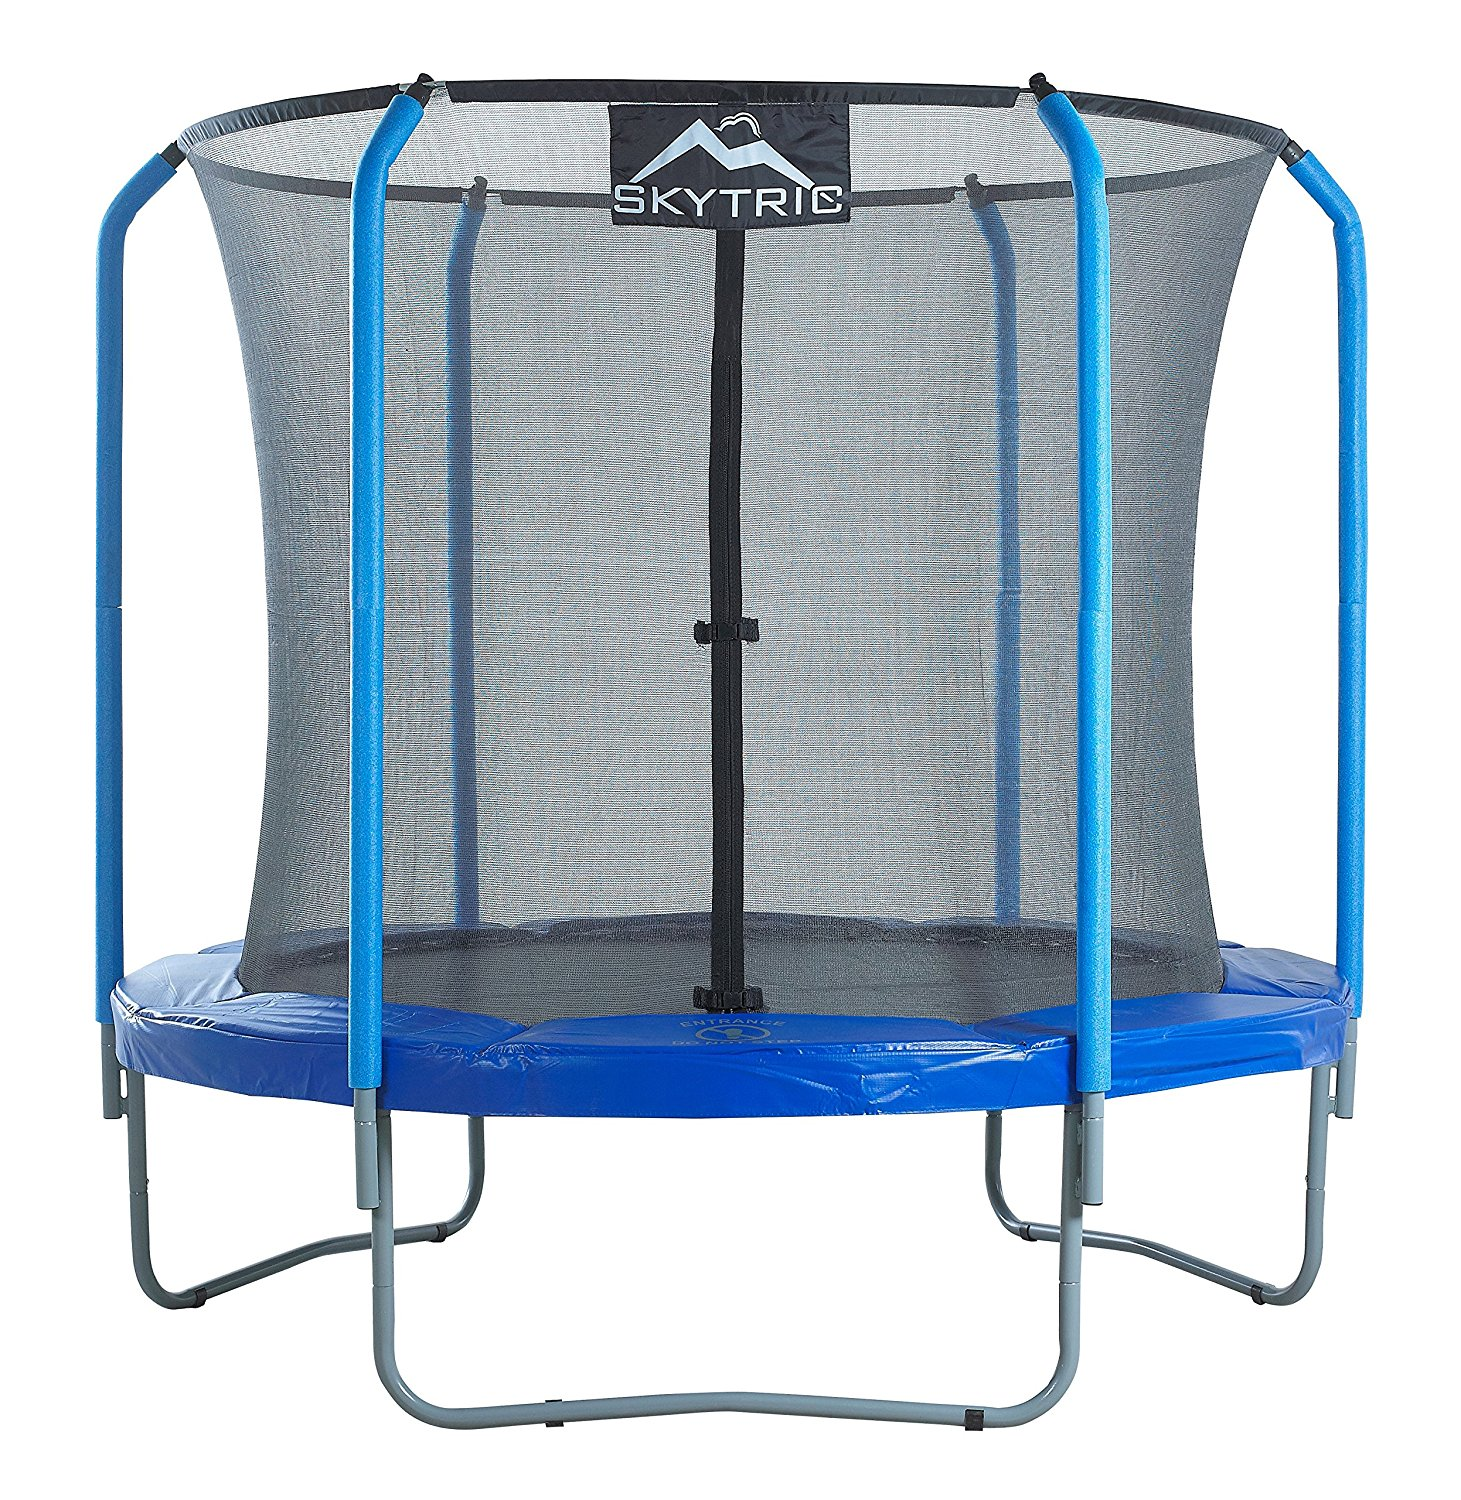 SKYTRIC 8FT TRAMPOLINE WITH TOP RING ENCLOSURE - Attainables